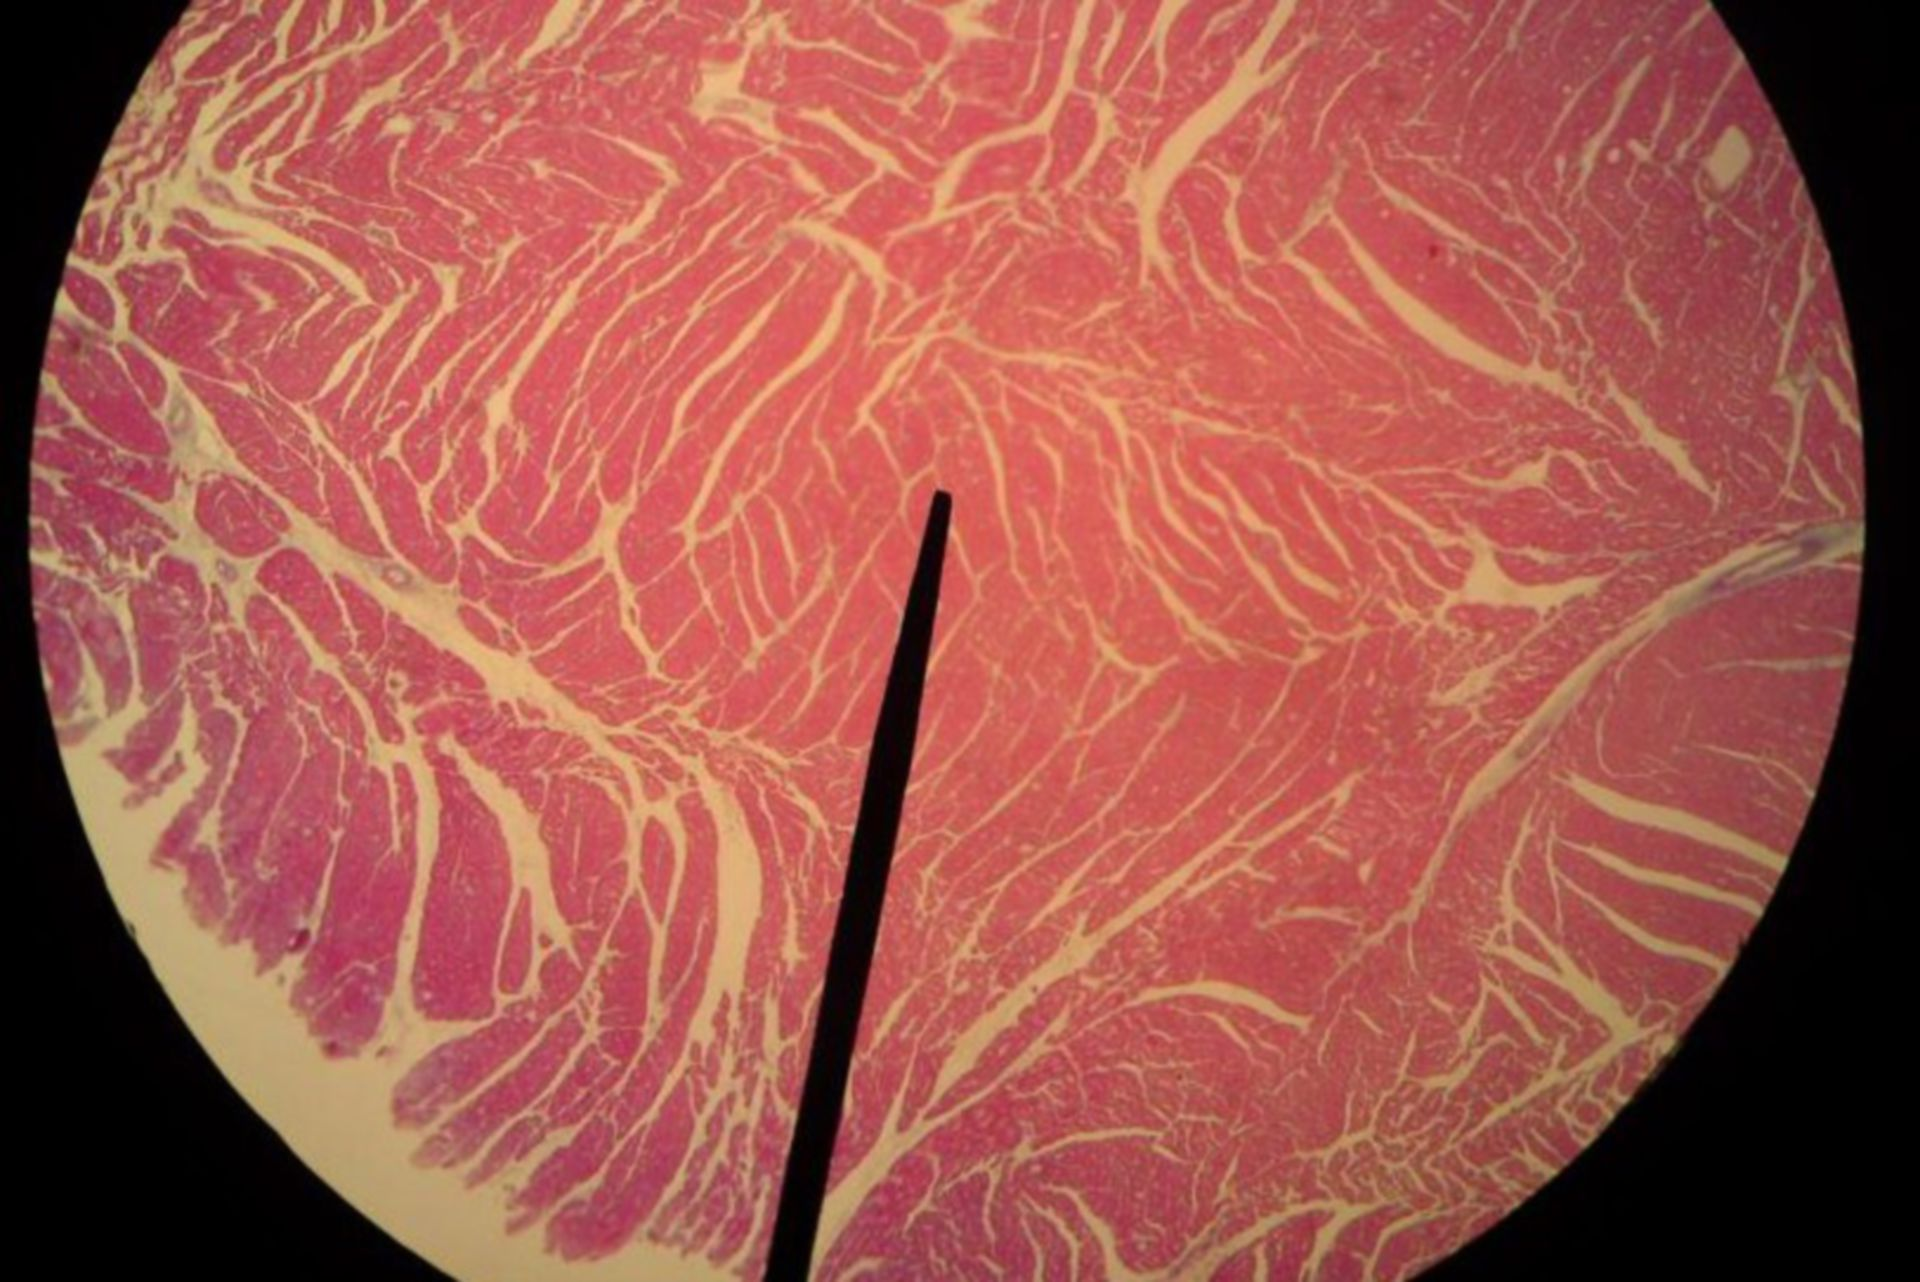 Heart muscle pig